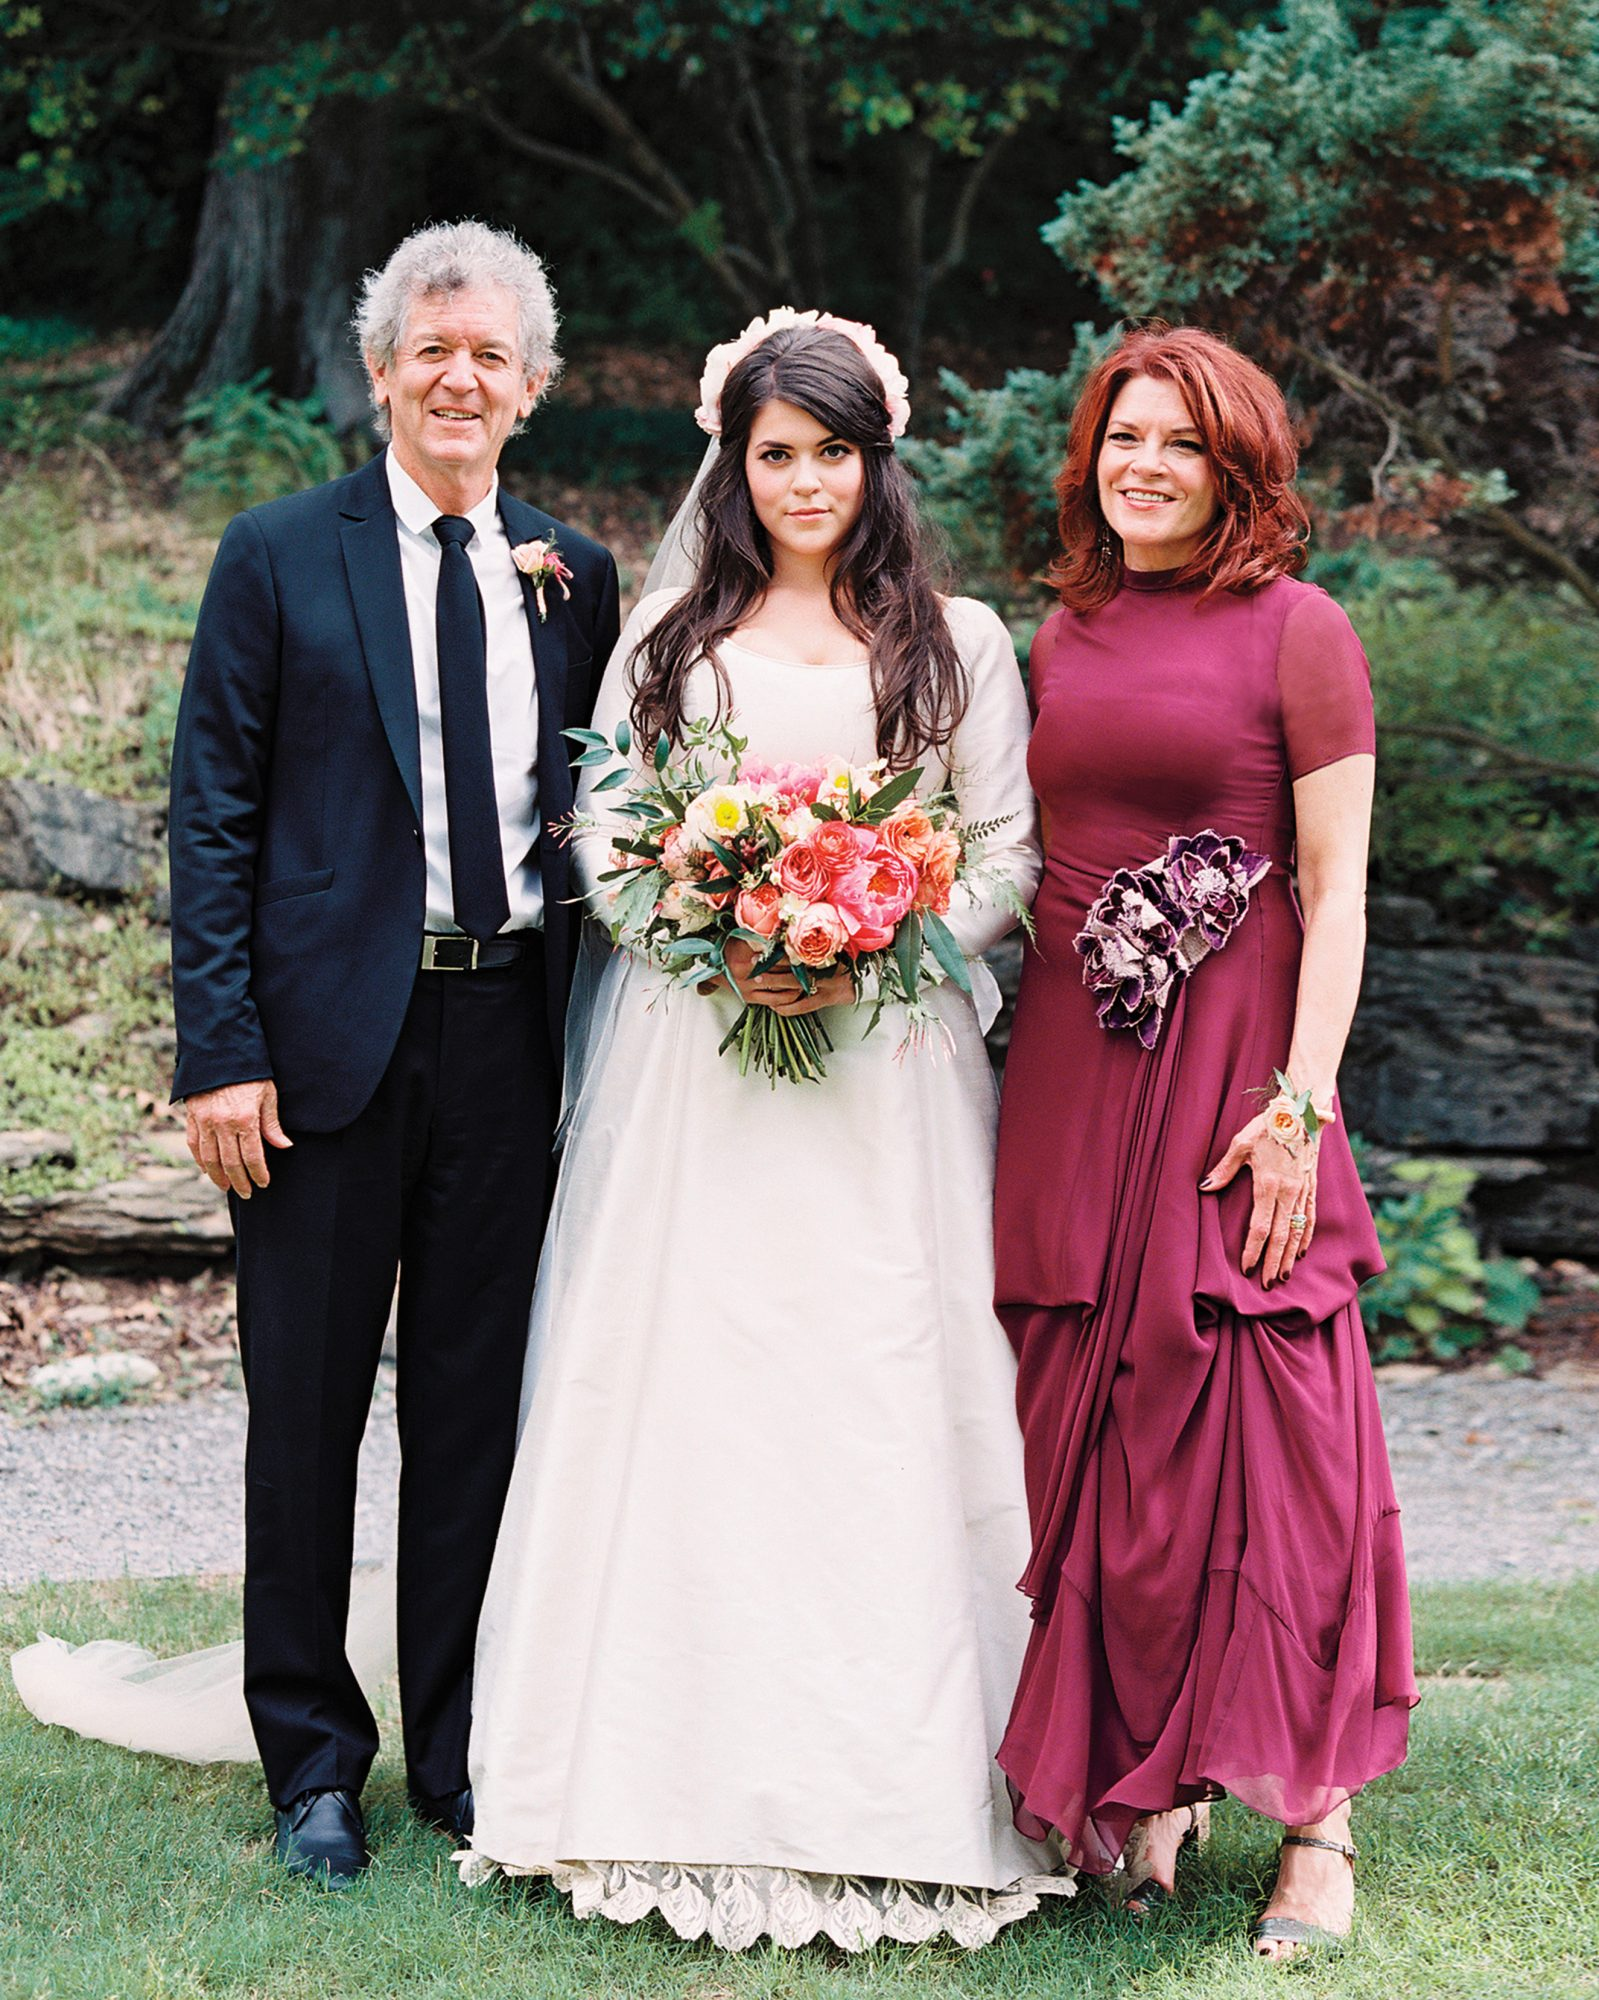 carrie-dan-ceremony-bride-parents-053114-f-027-s111627.jpg